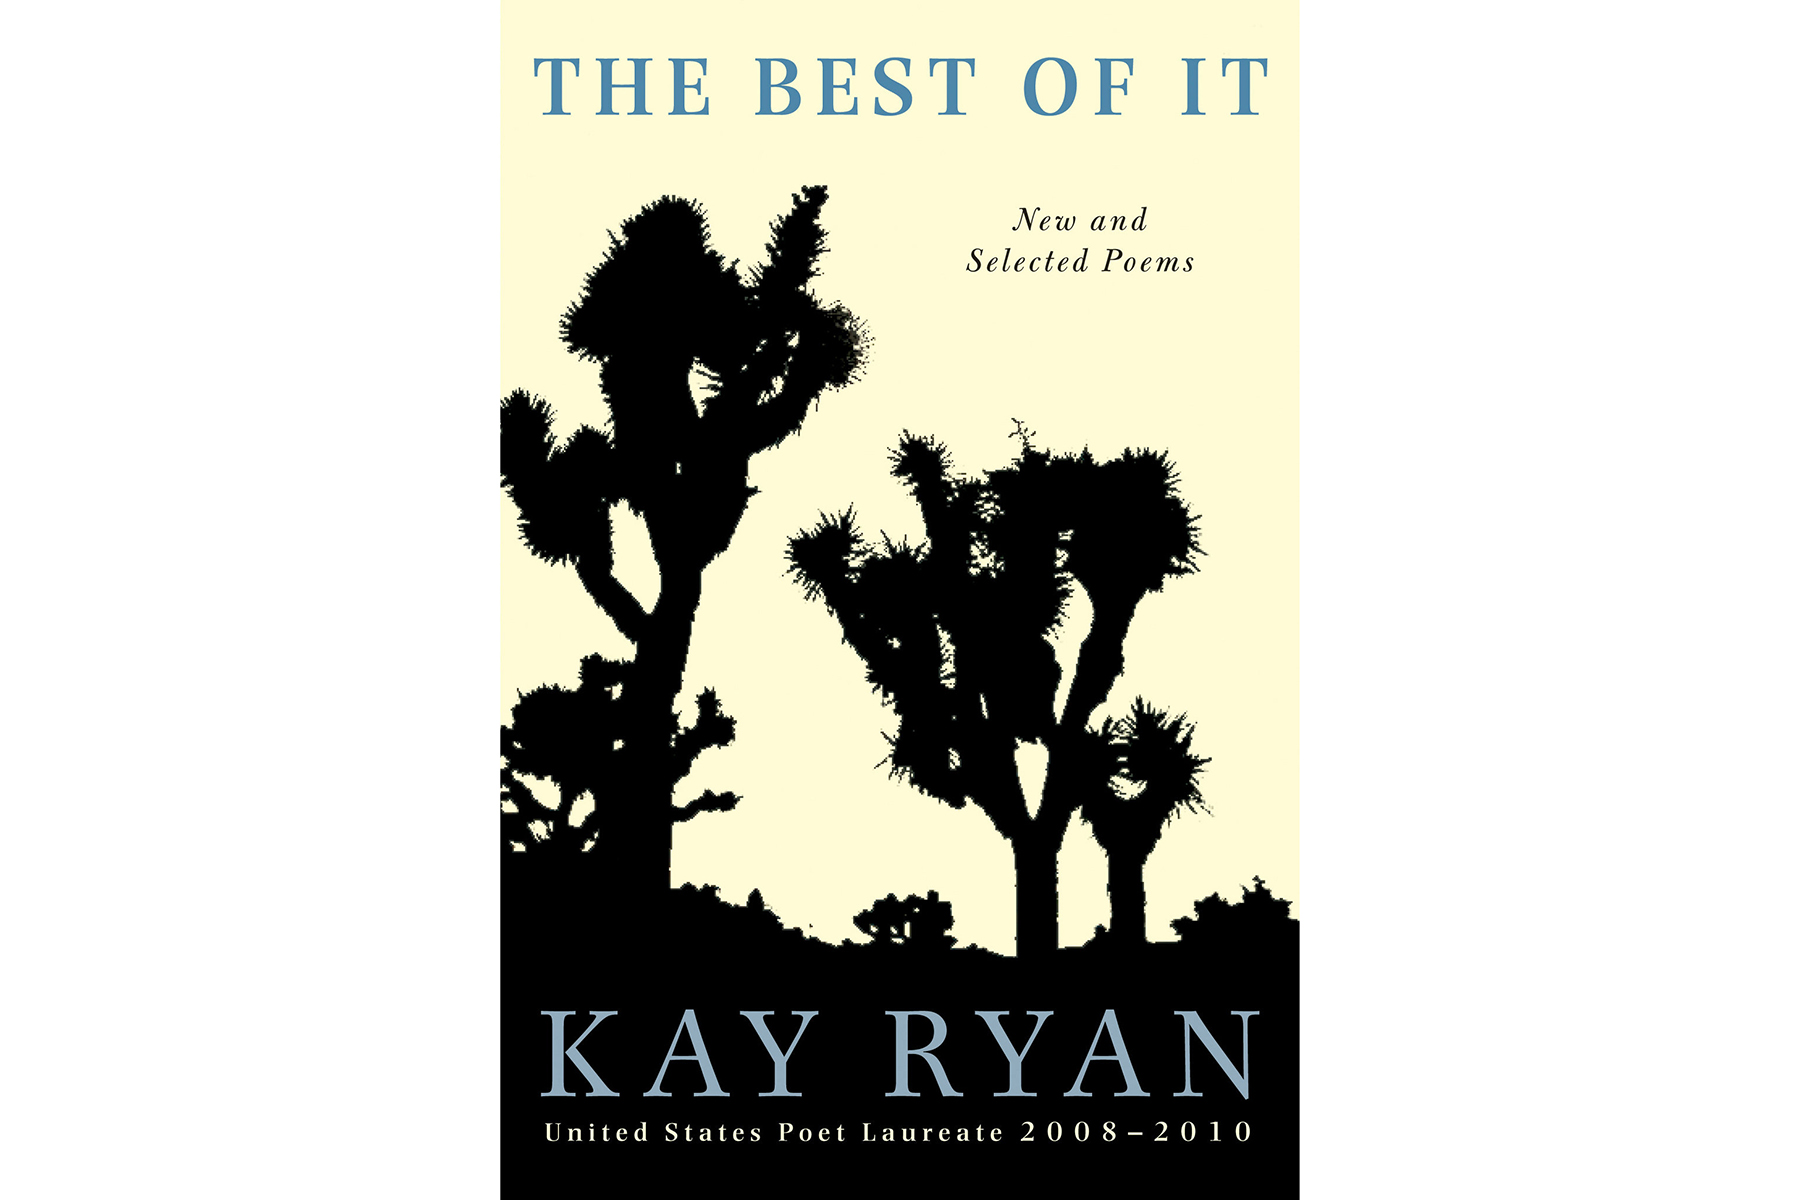 The Best of It, by Kay Ryan Cover